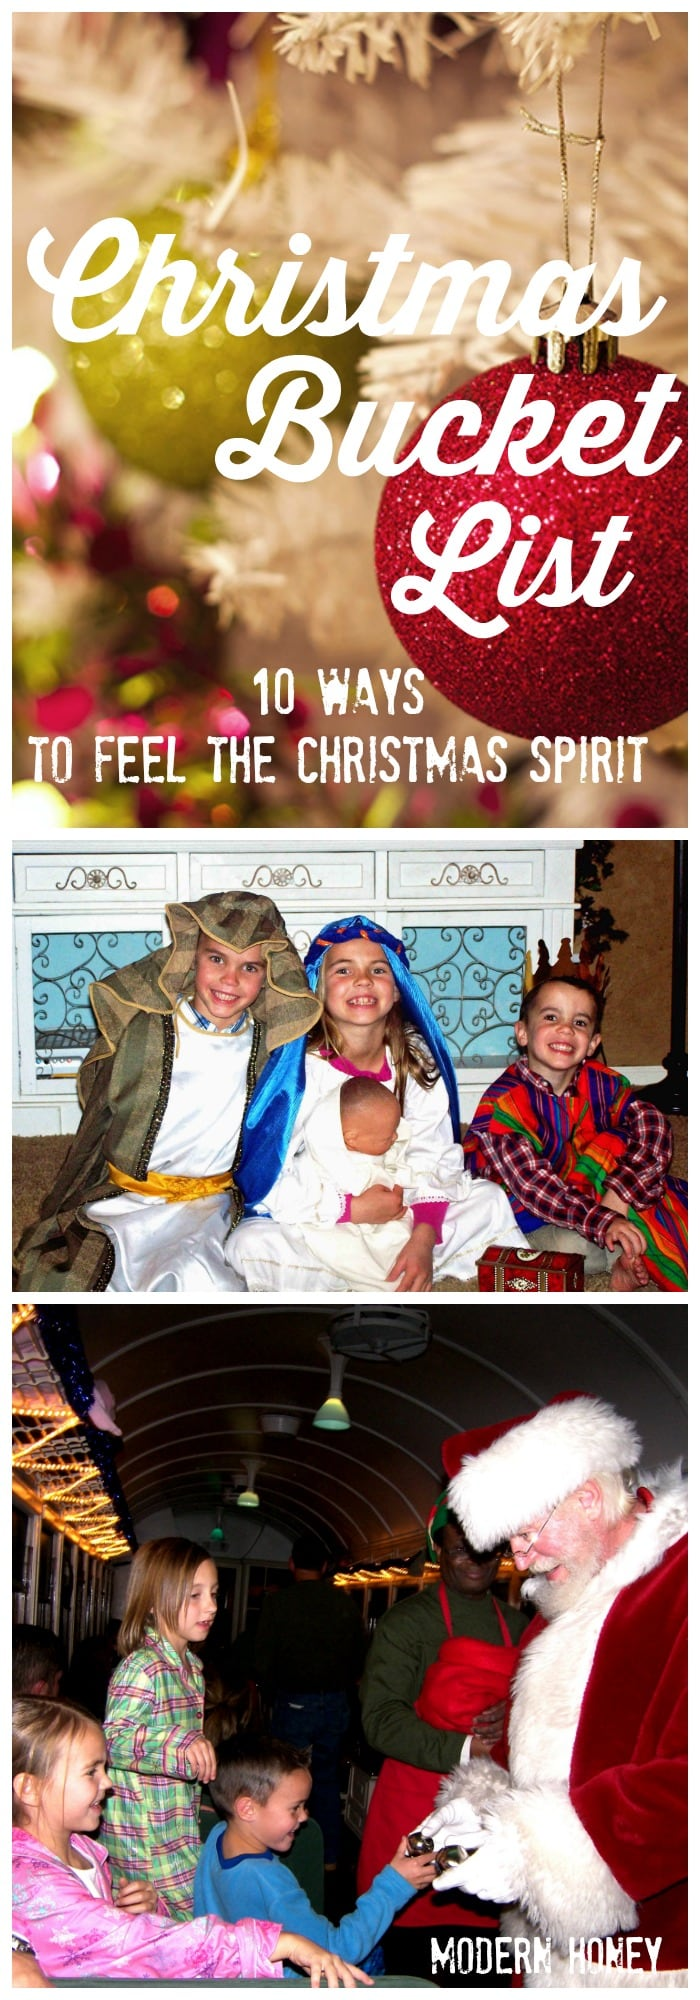 Christmas Bucket List. 10 Ways to Feel the Christmas Spirit. Ideas on how to make Christmas extra magical with kids and celebrate the true meaning of Christmas.